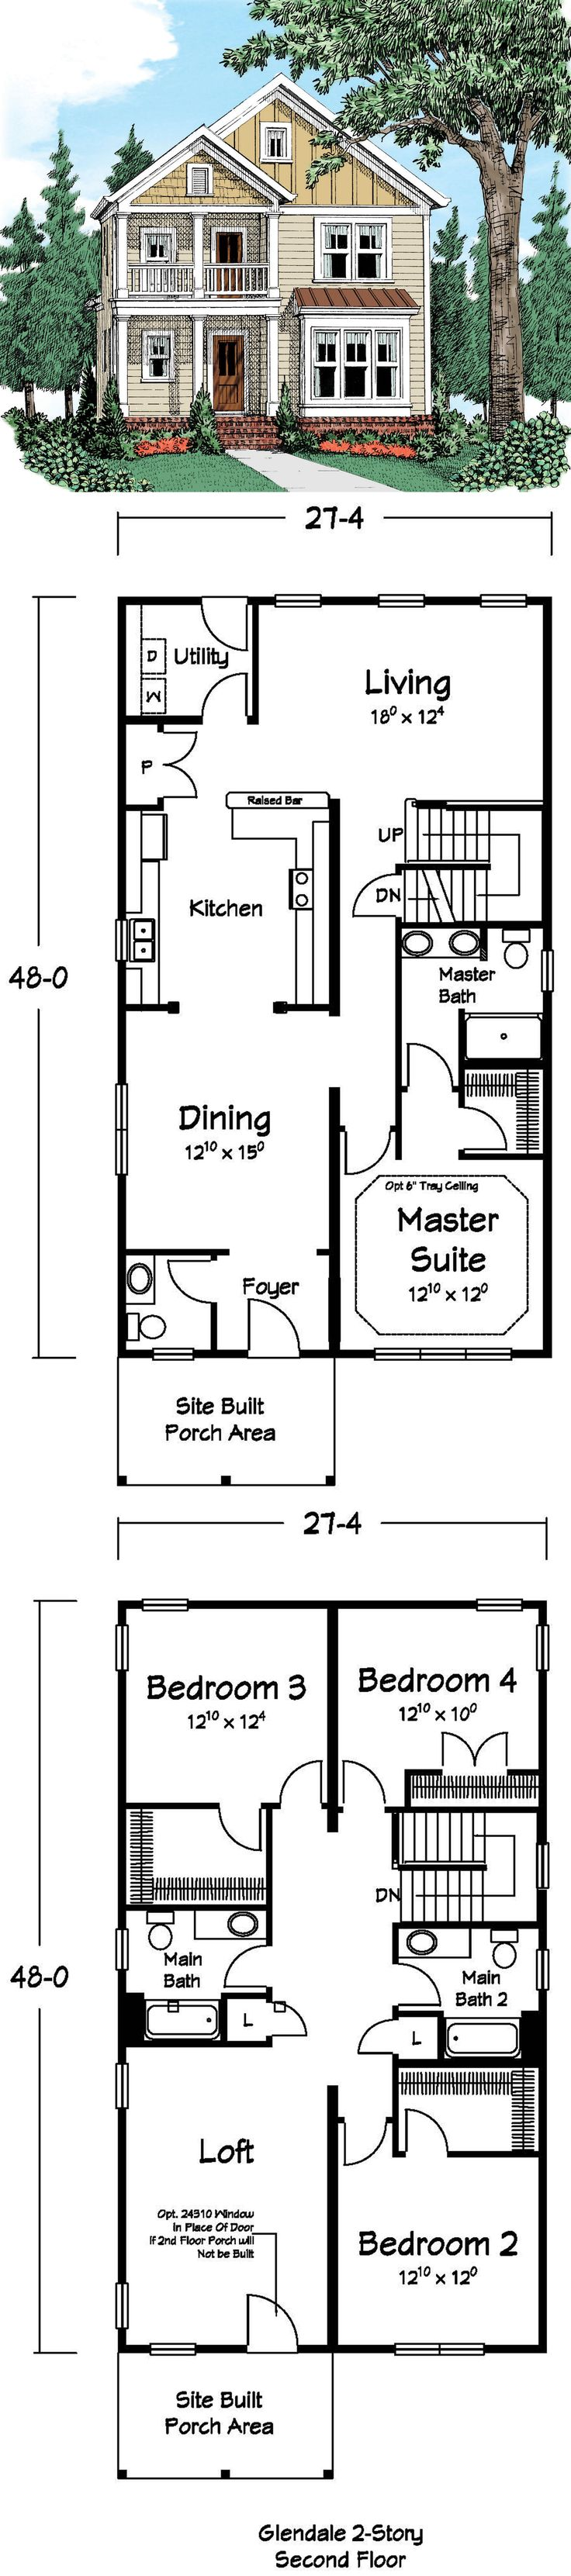 25 best loft floor plans ideas on pinterest small homes for Two story loft floor plans